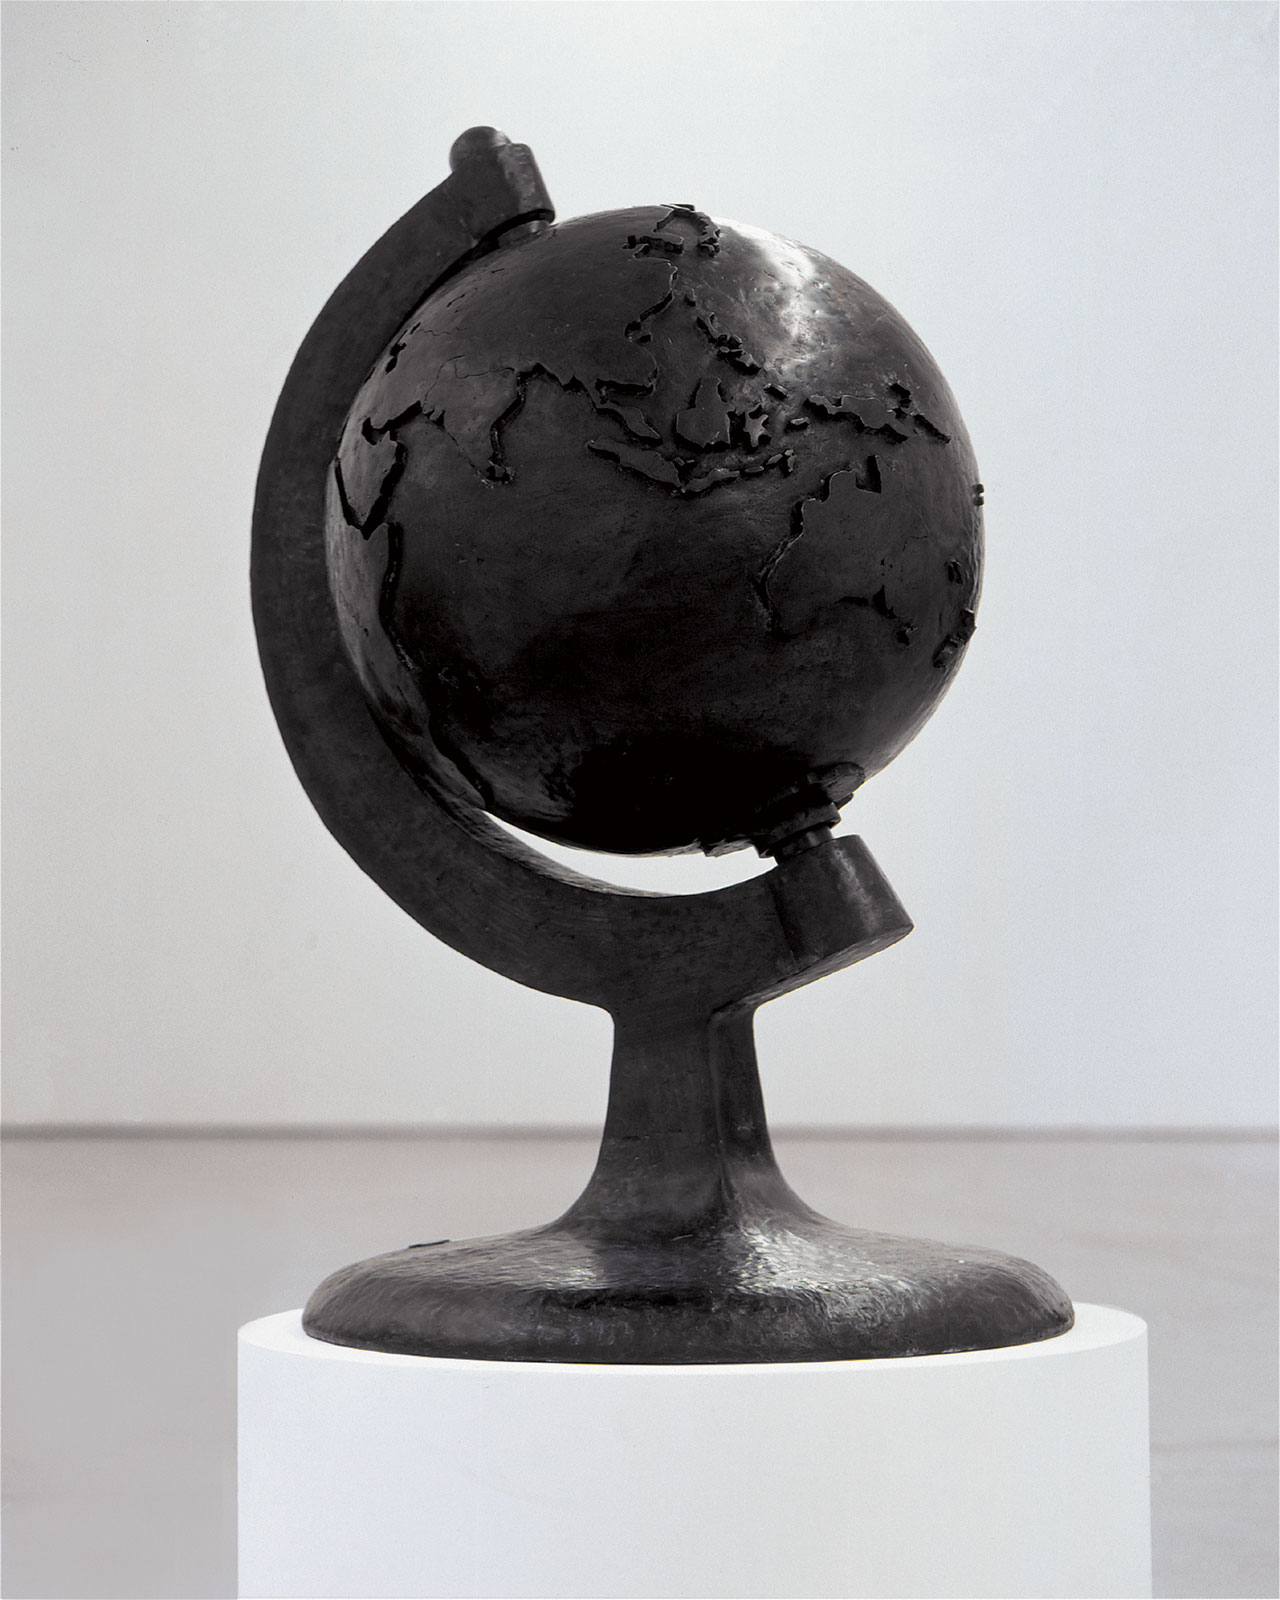 GLOBE from Post Craft series, 2002. Patinated bronze, mechanical parts. Courtesy of Groninger Museum.